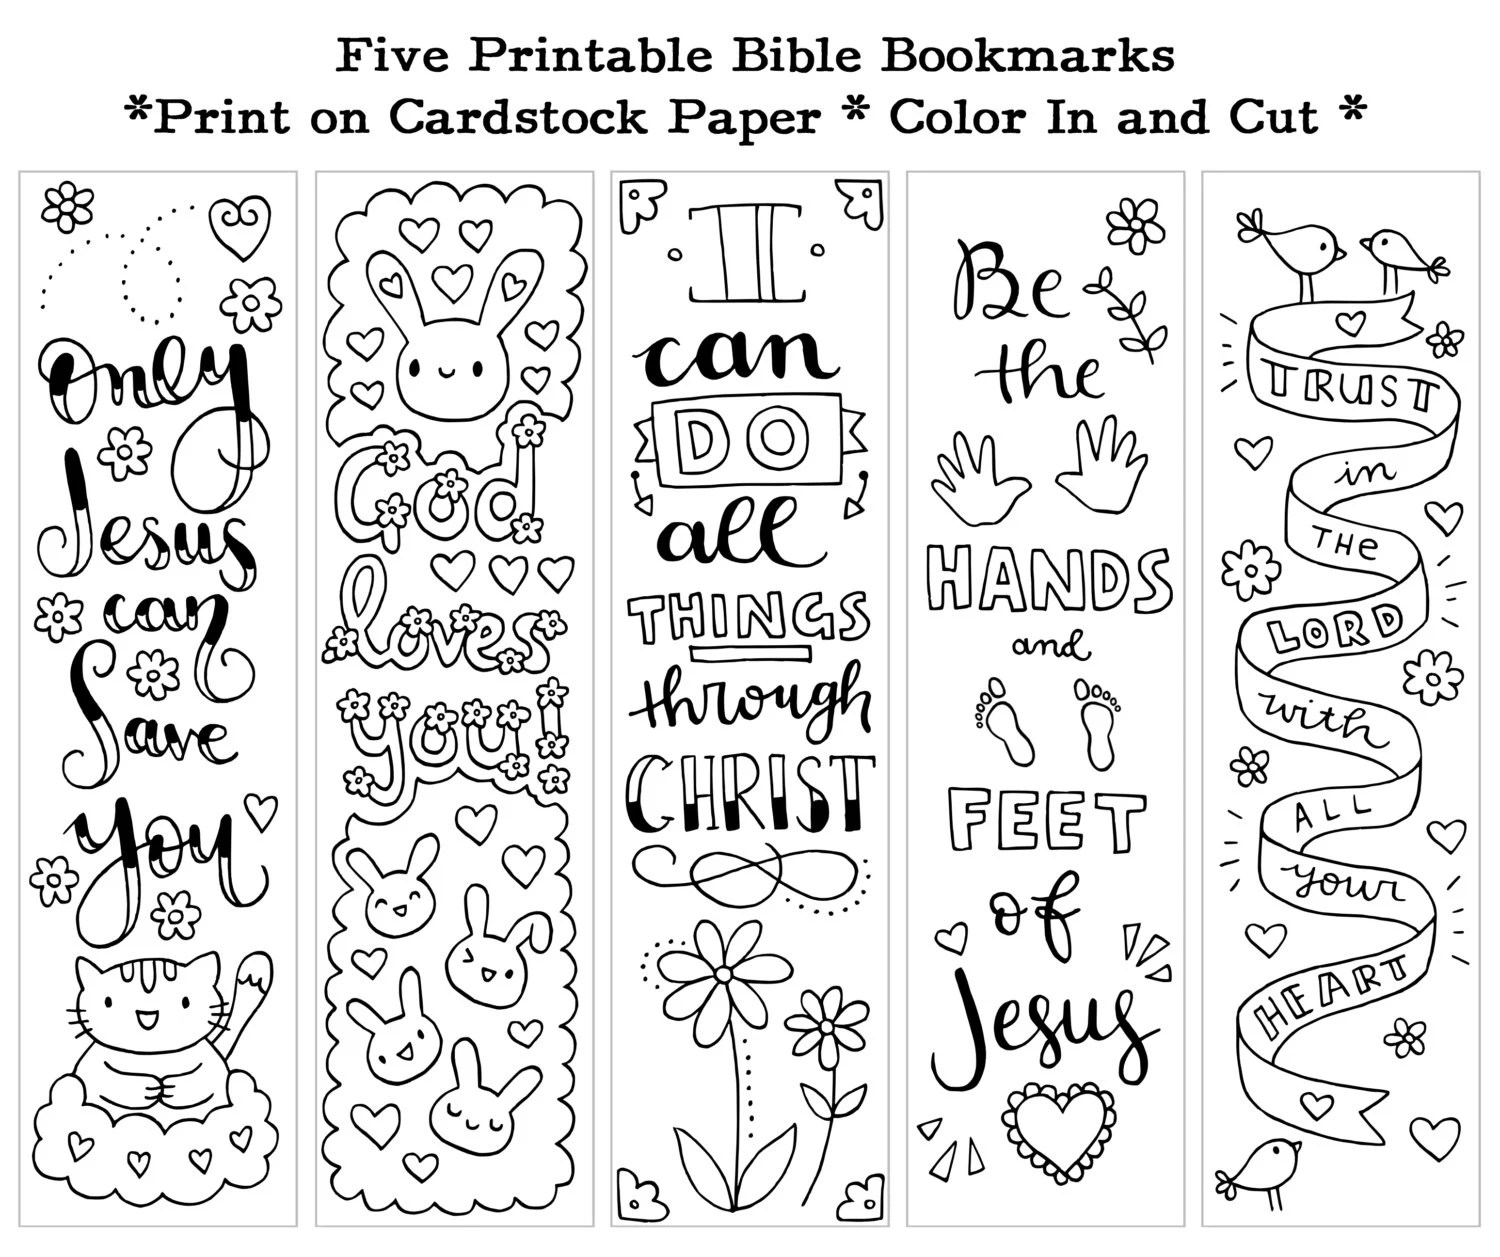 Five Instant Printable Color In Cute Bible Bookmarks by SusyAn